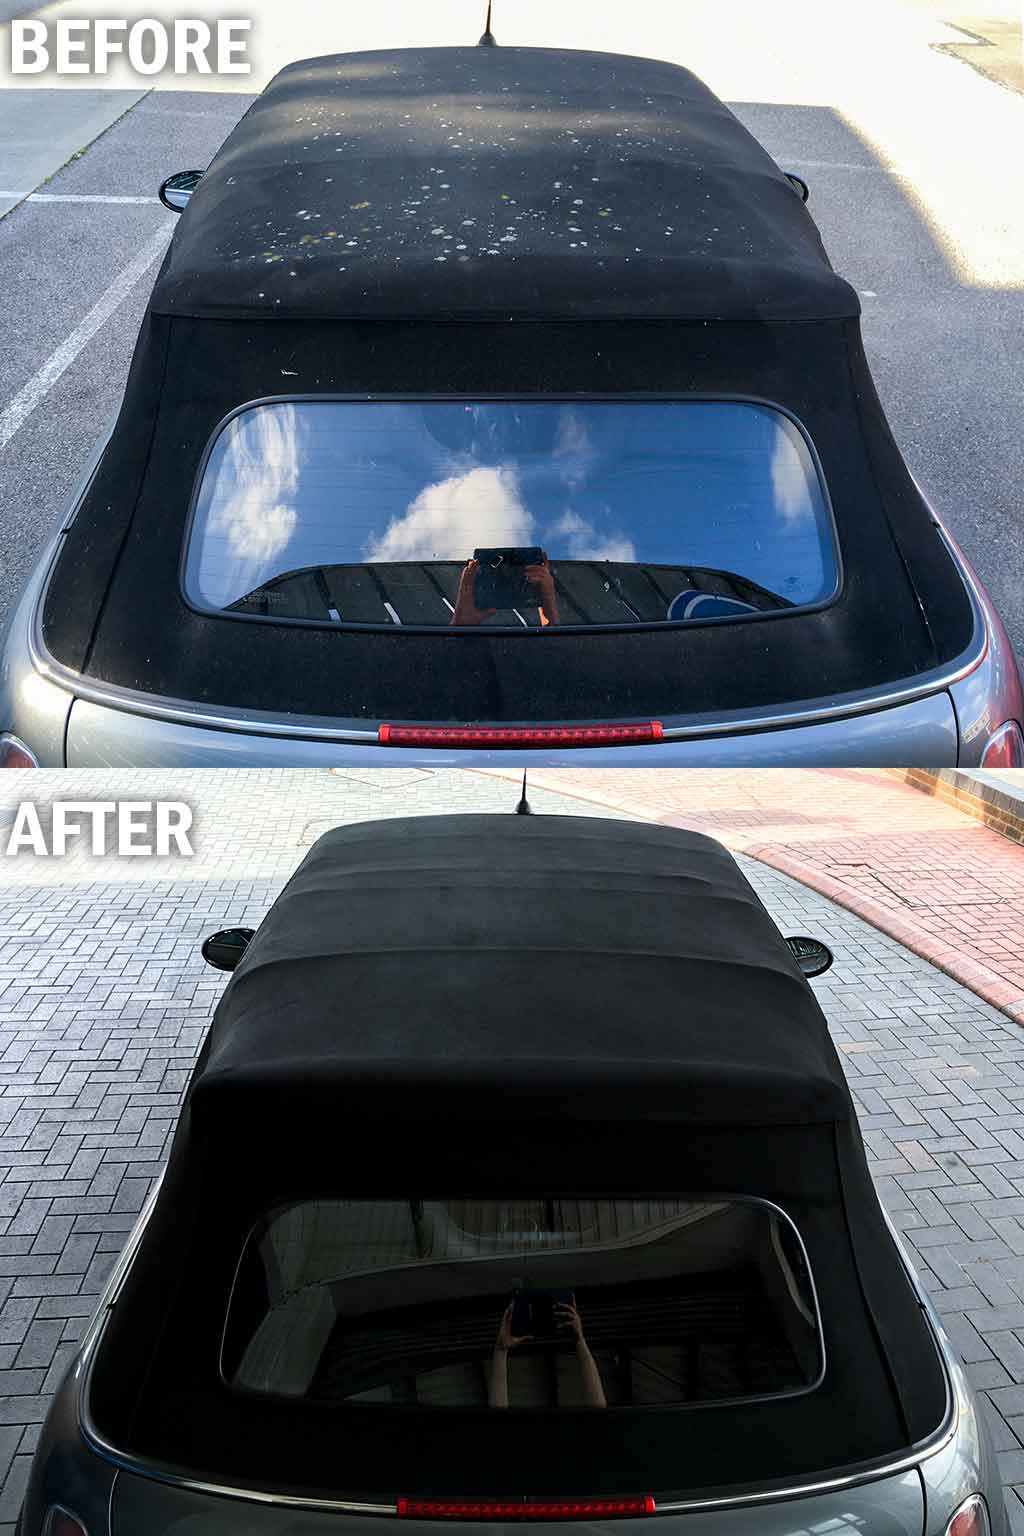 Convertible roof restoration before and after